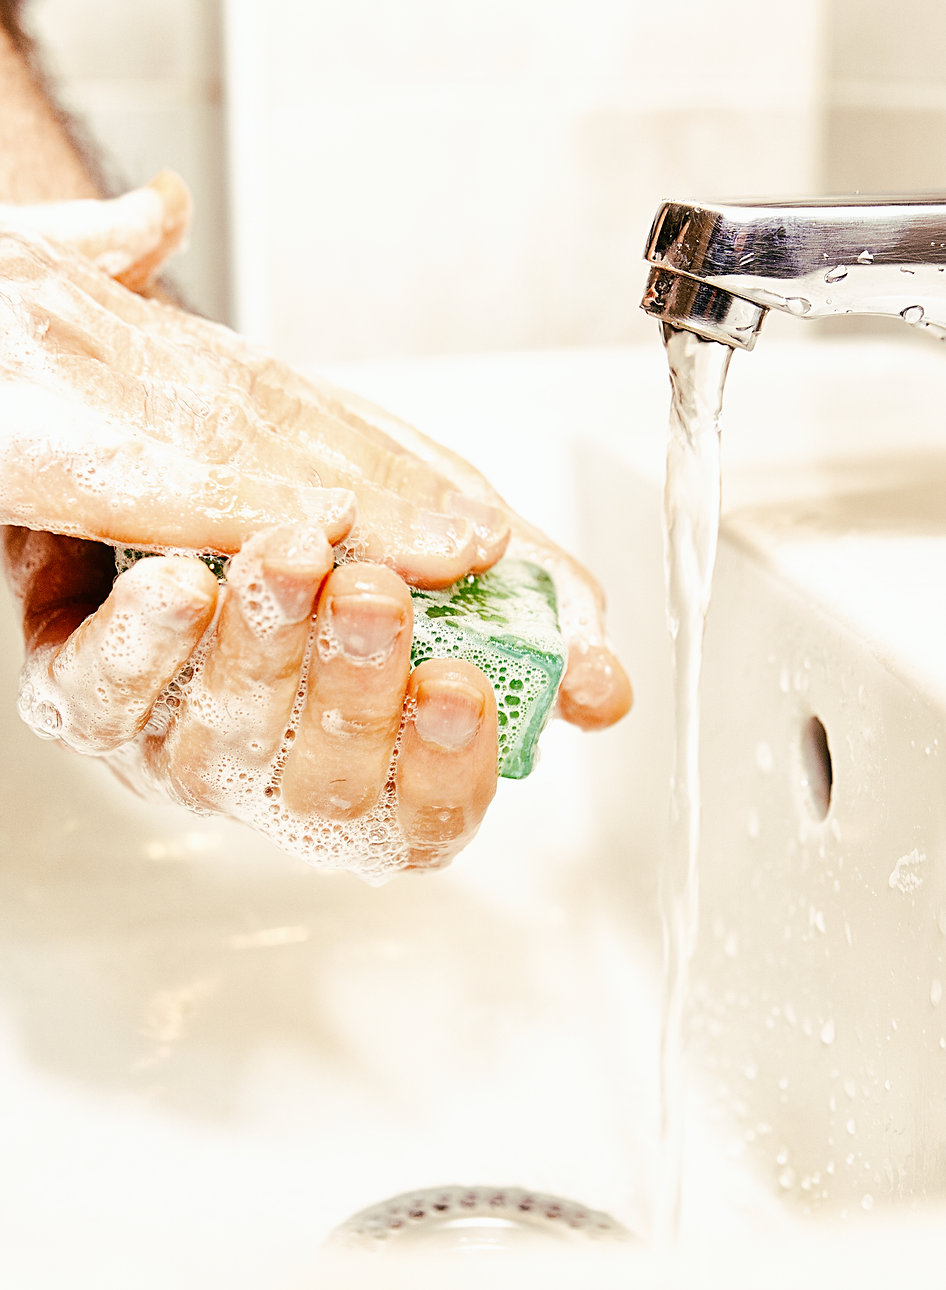 wash_your_hands_with_soap-scopio-6224507